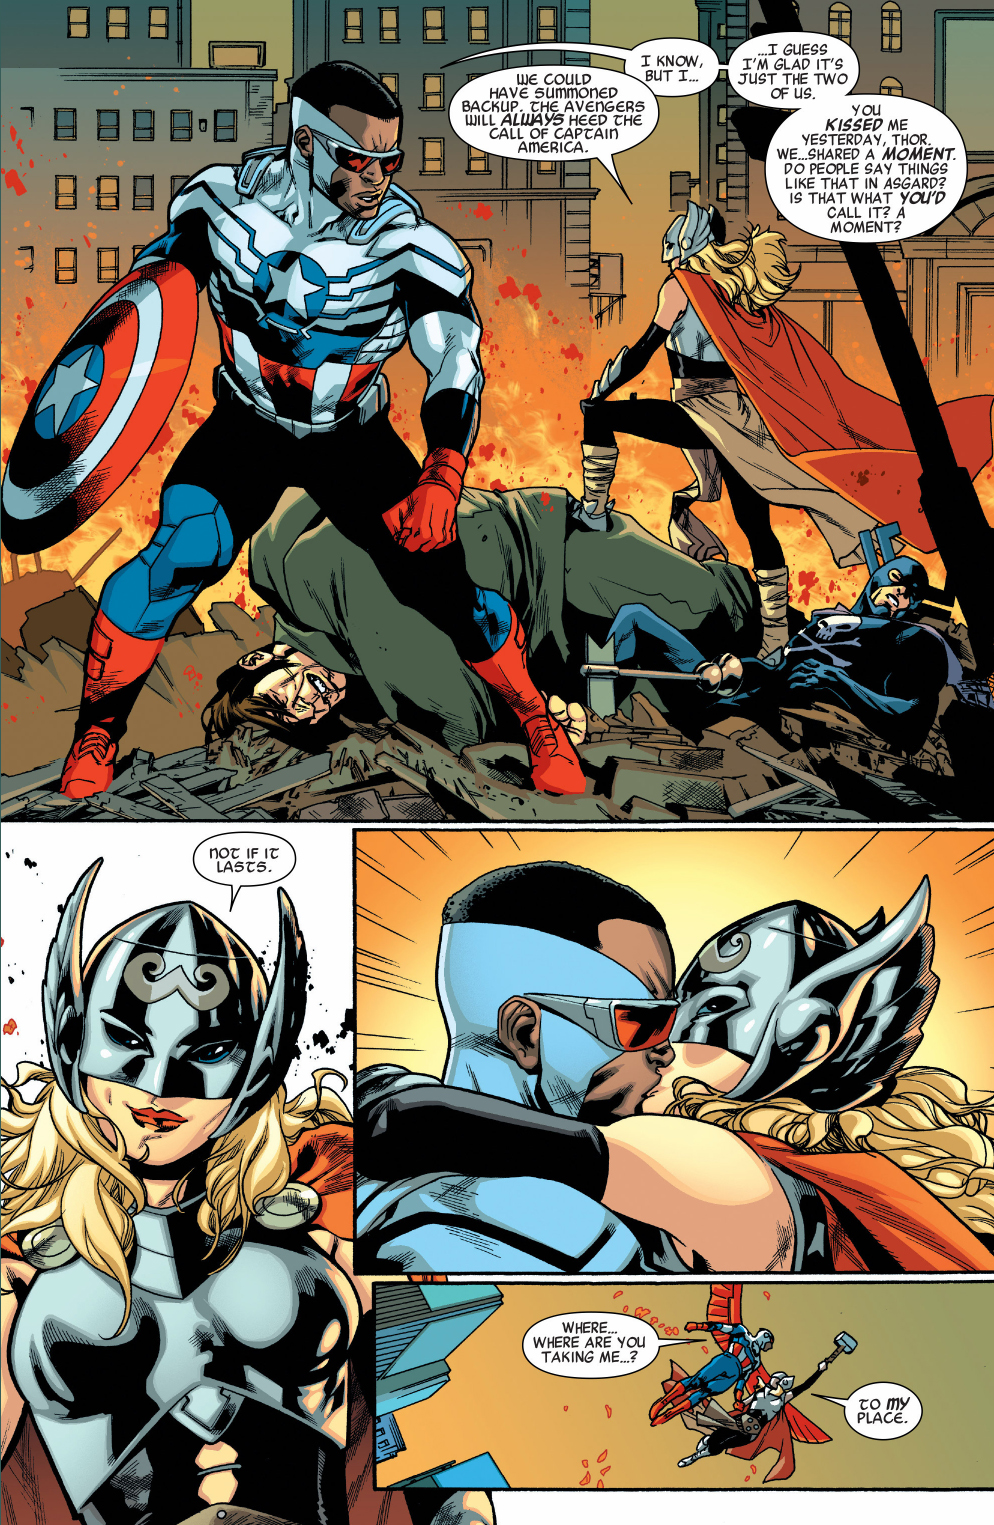 miss marvel's fanfic ships captain america and thor